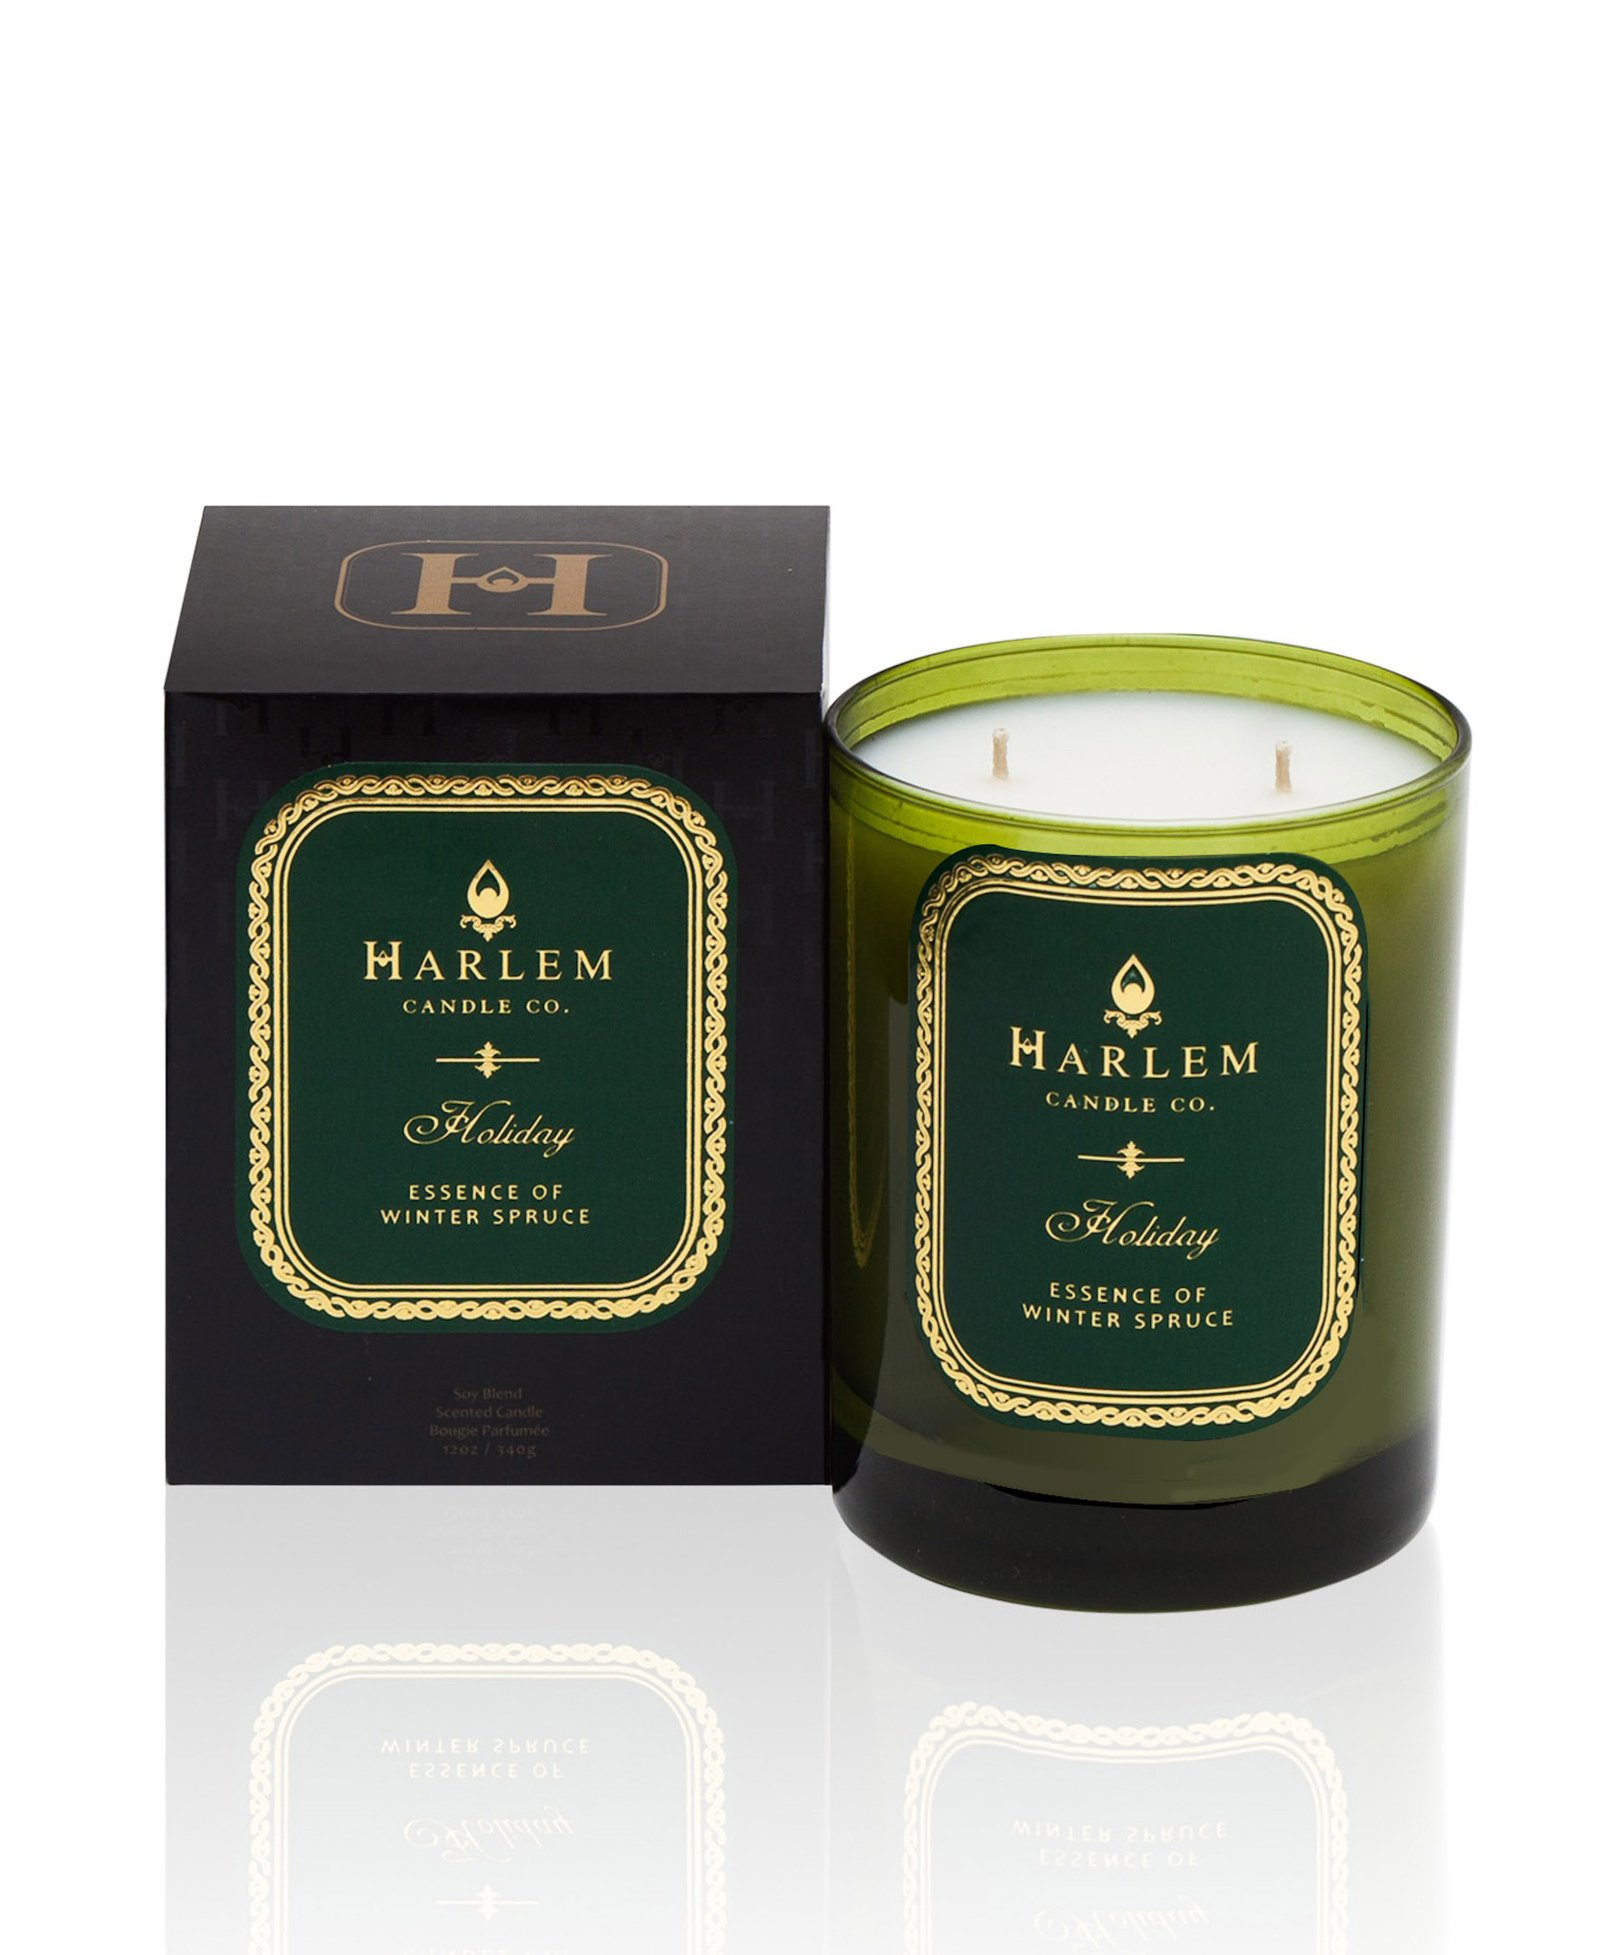 10 best gifts for grandparents from small businesses: The holiday candle from Harlem Candle Co is gorgeous